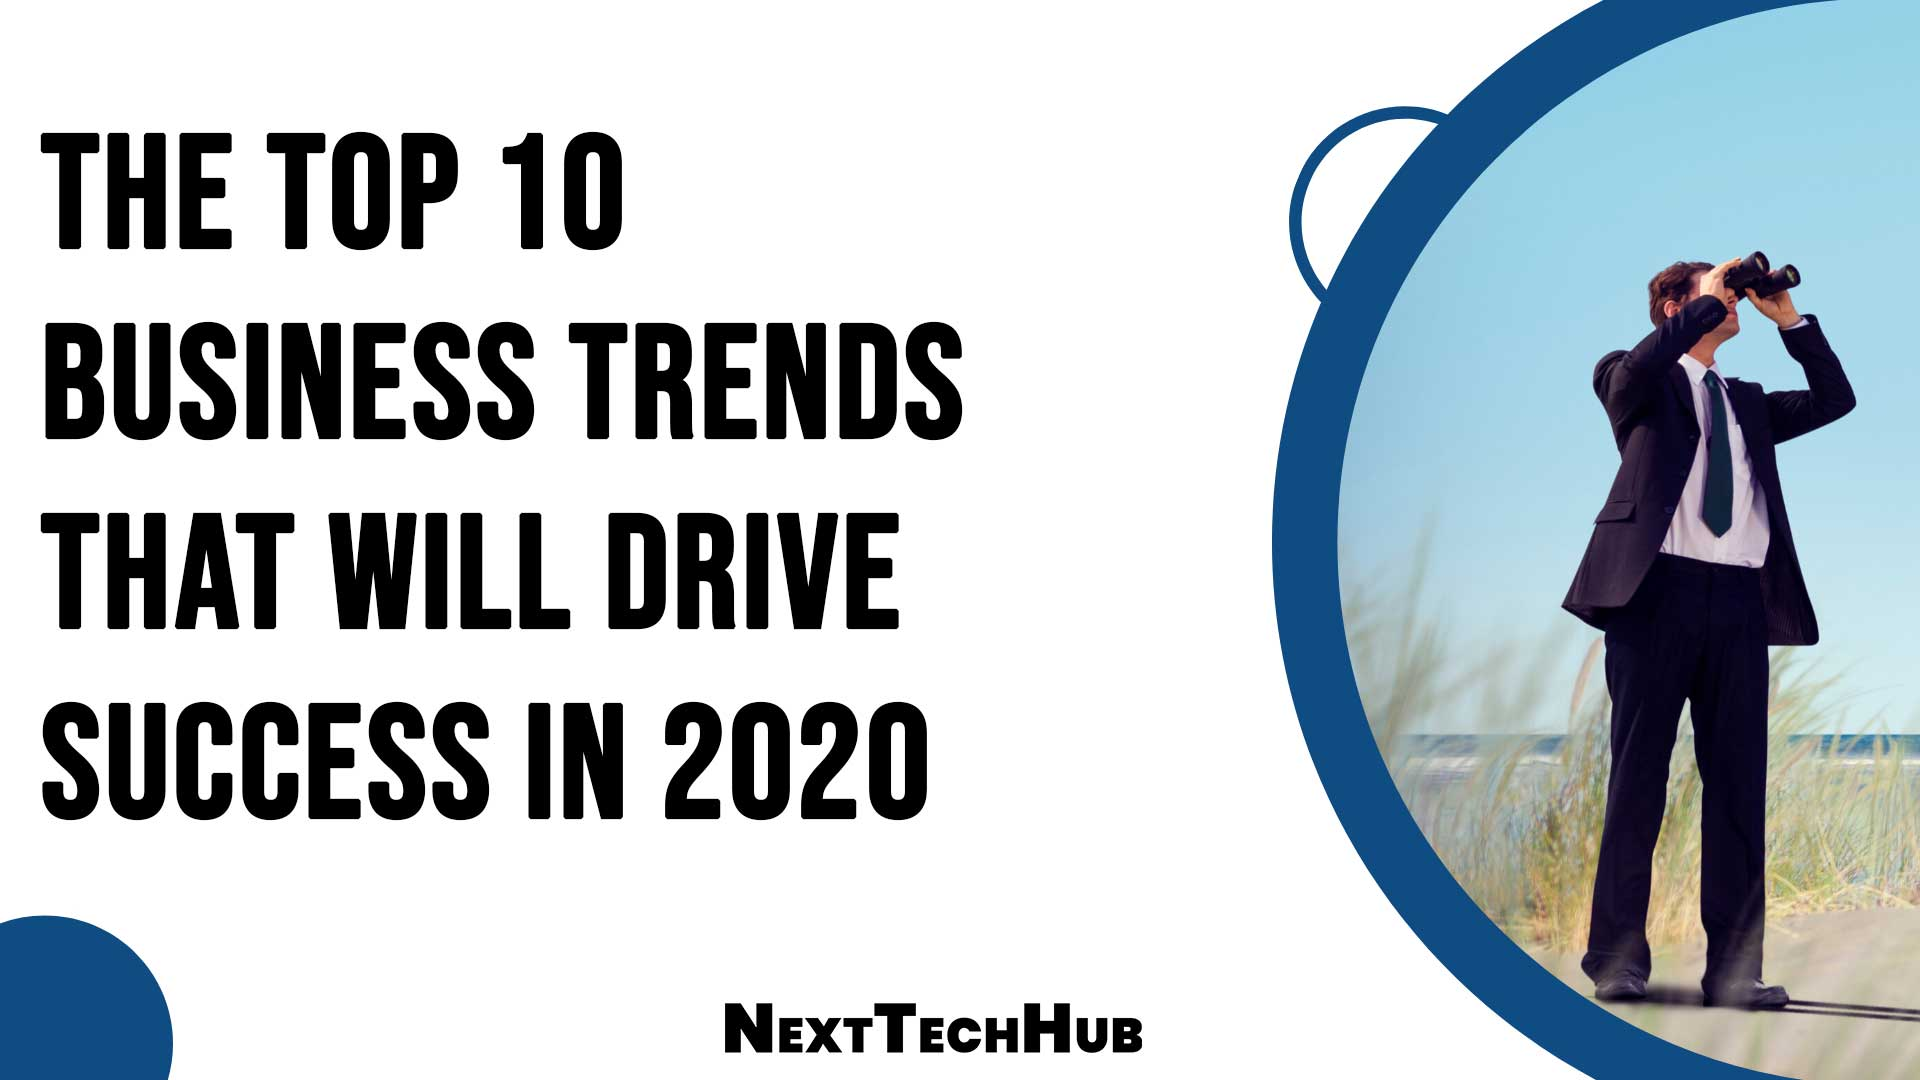 The Top 10 Business Trends That Will Drive Success In 2020